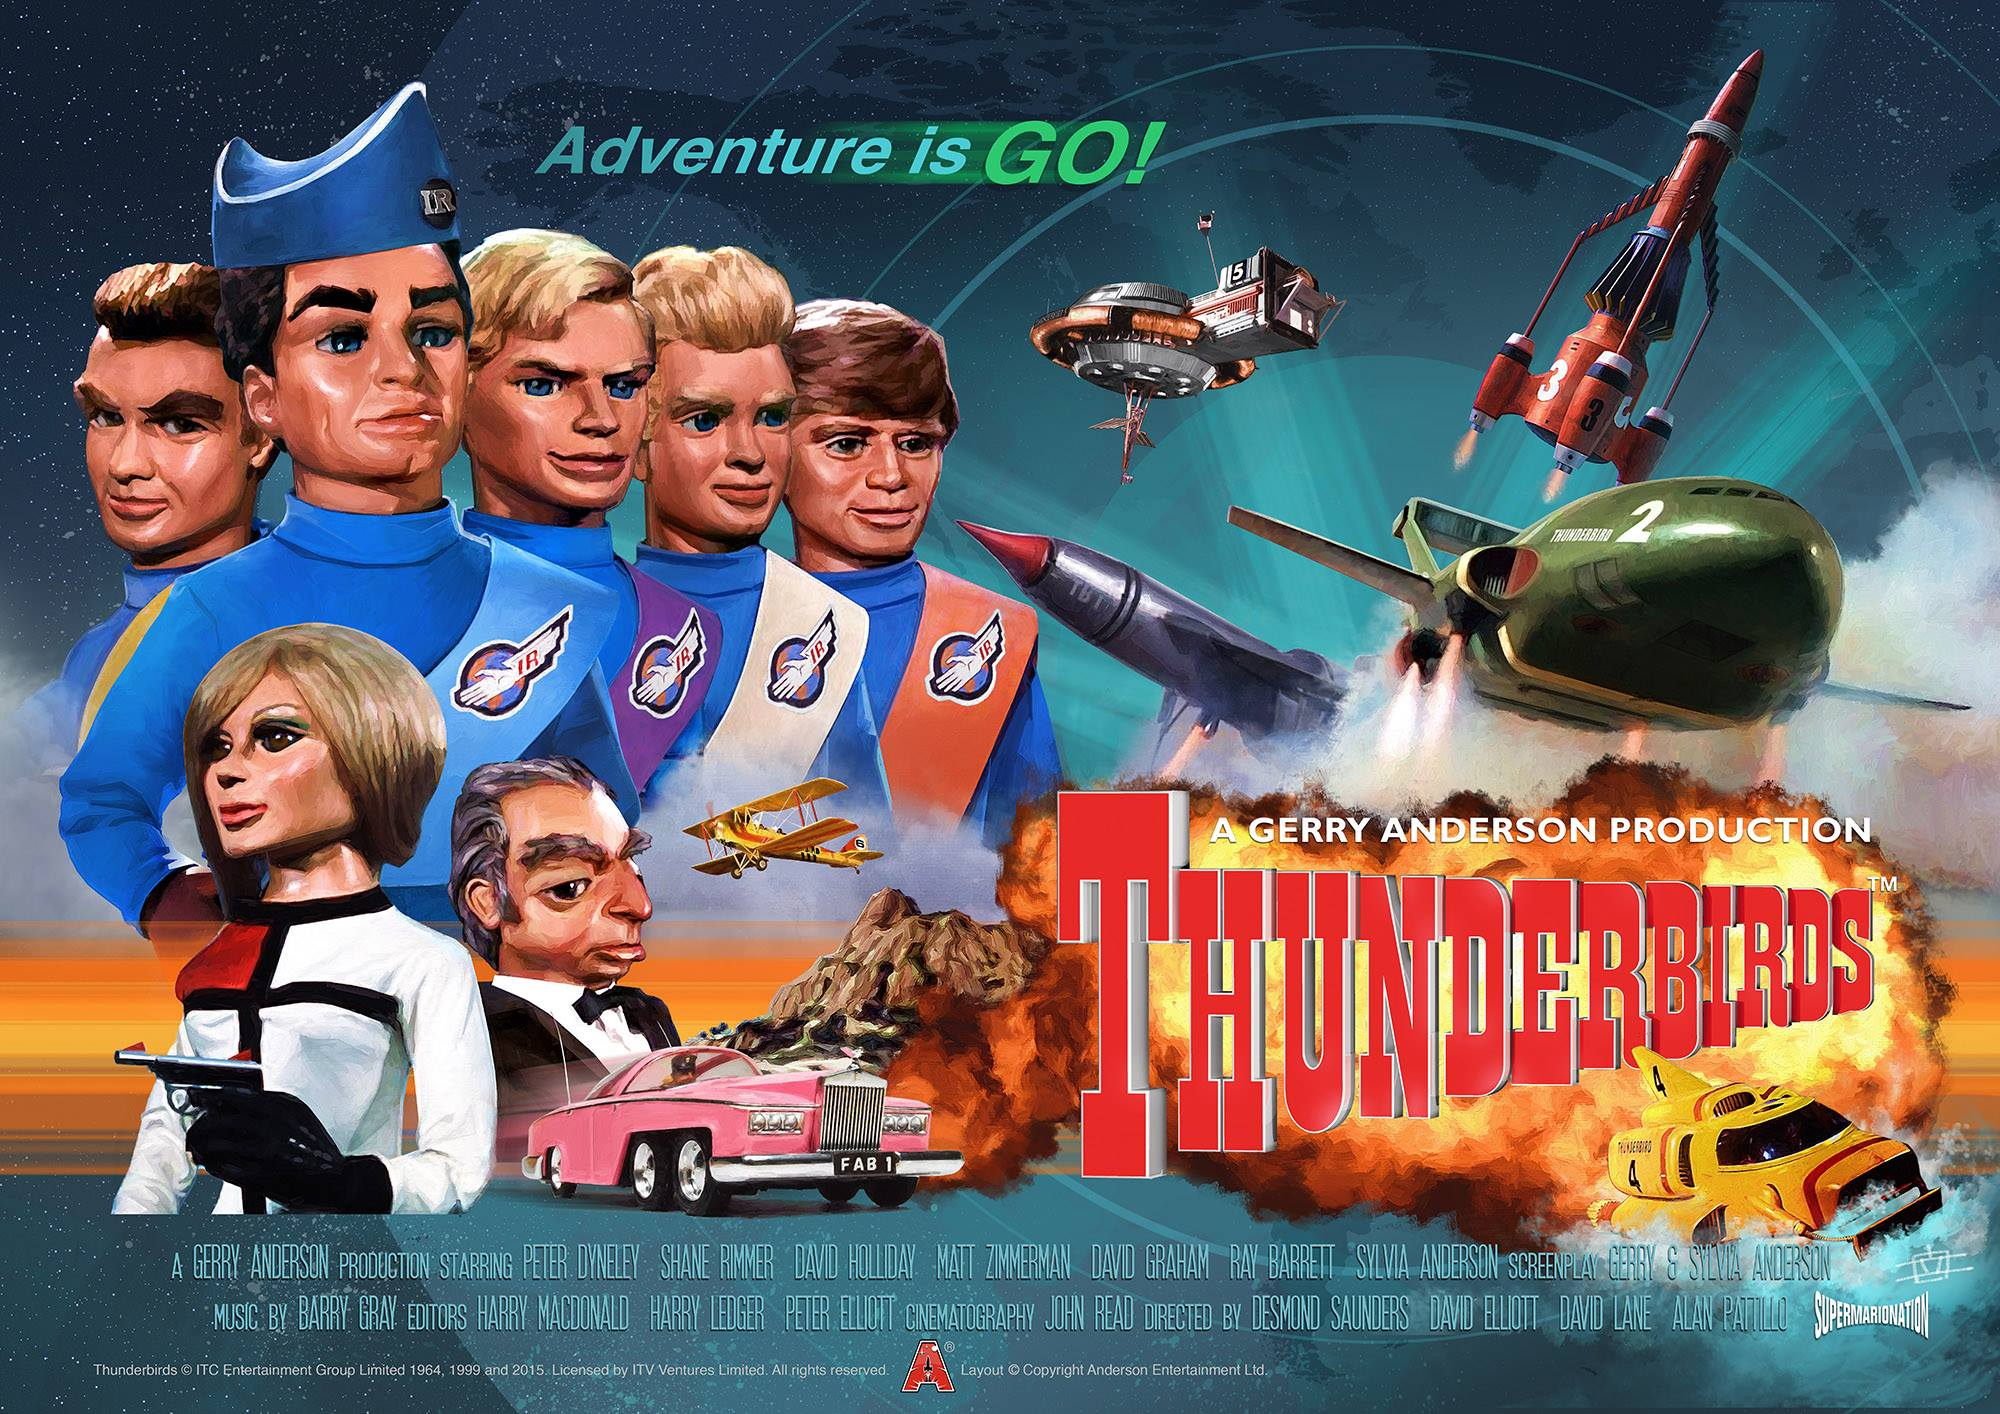 Official Limited Edition Thunderbirds Poster Released